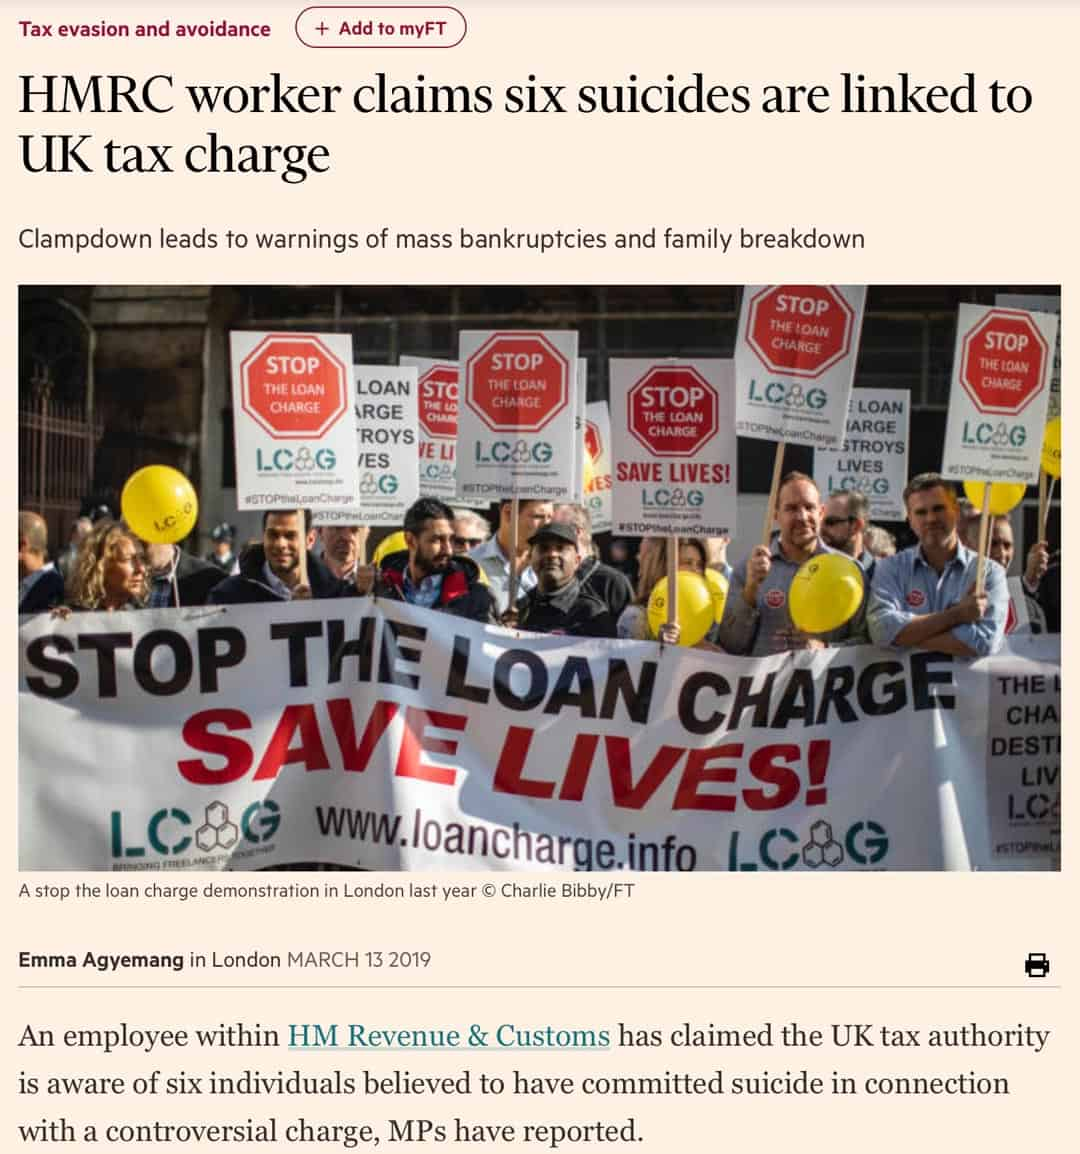 HMRC suicides linked to tax charges